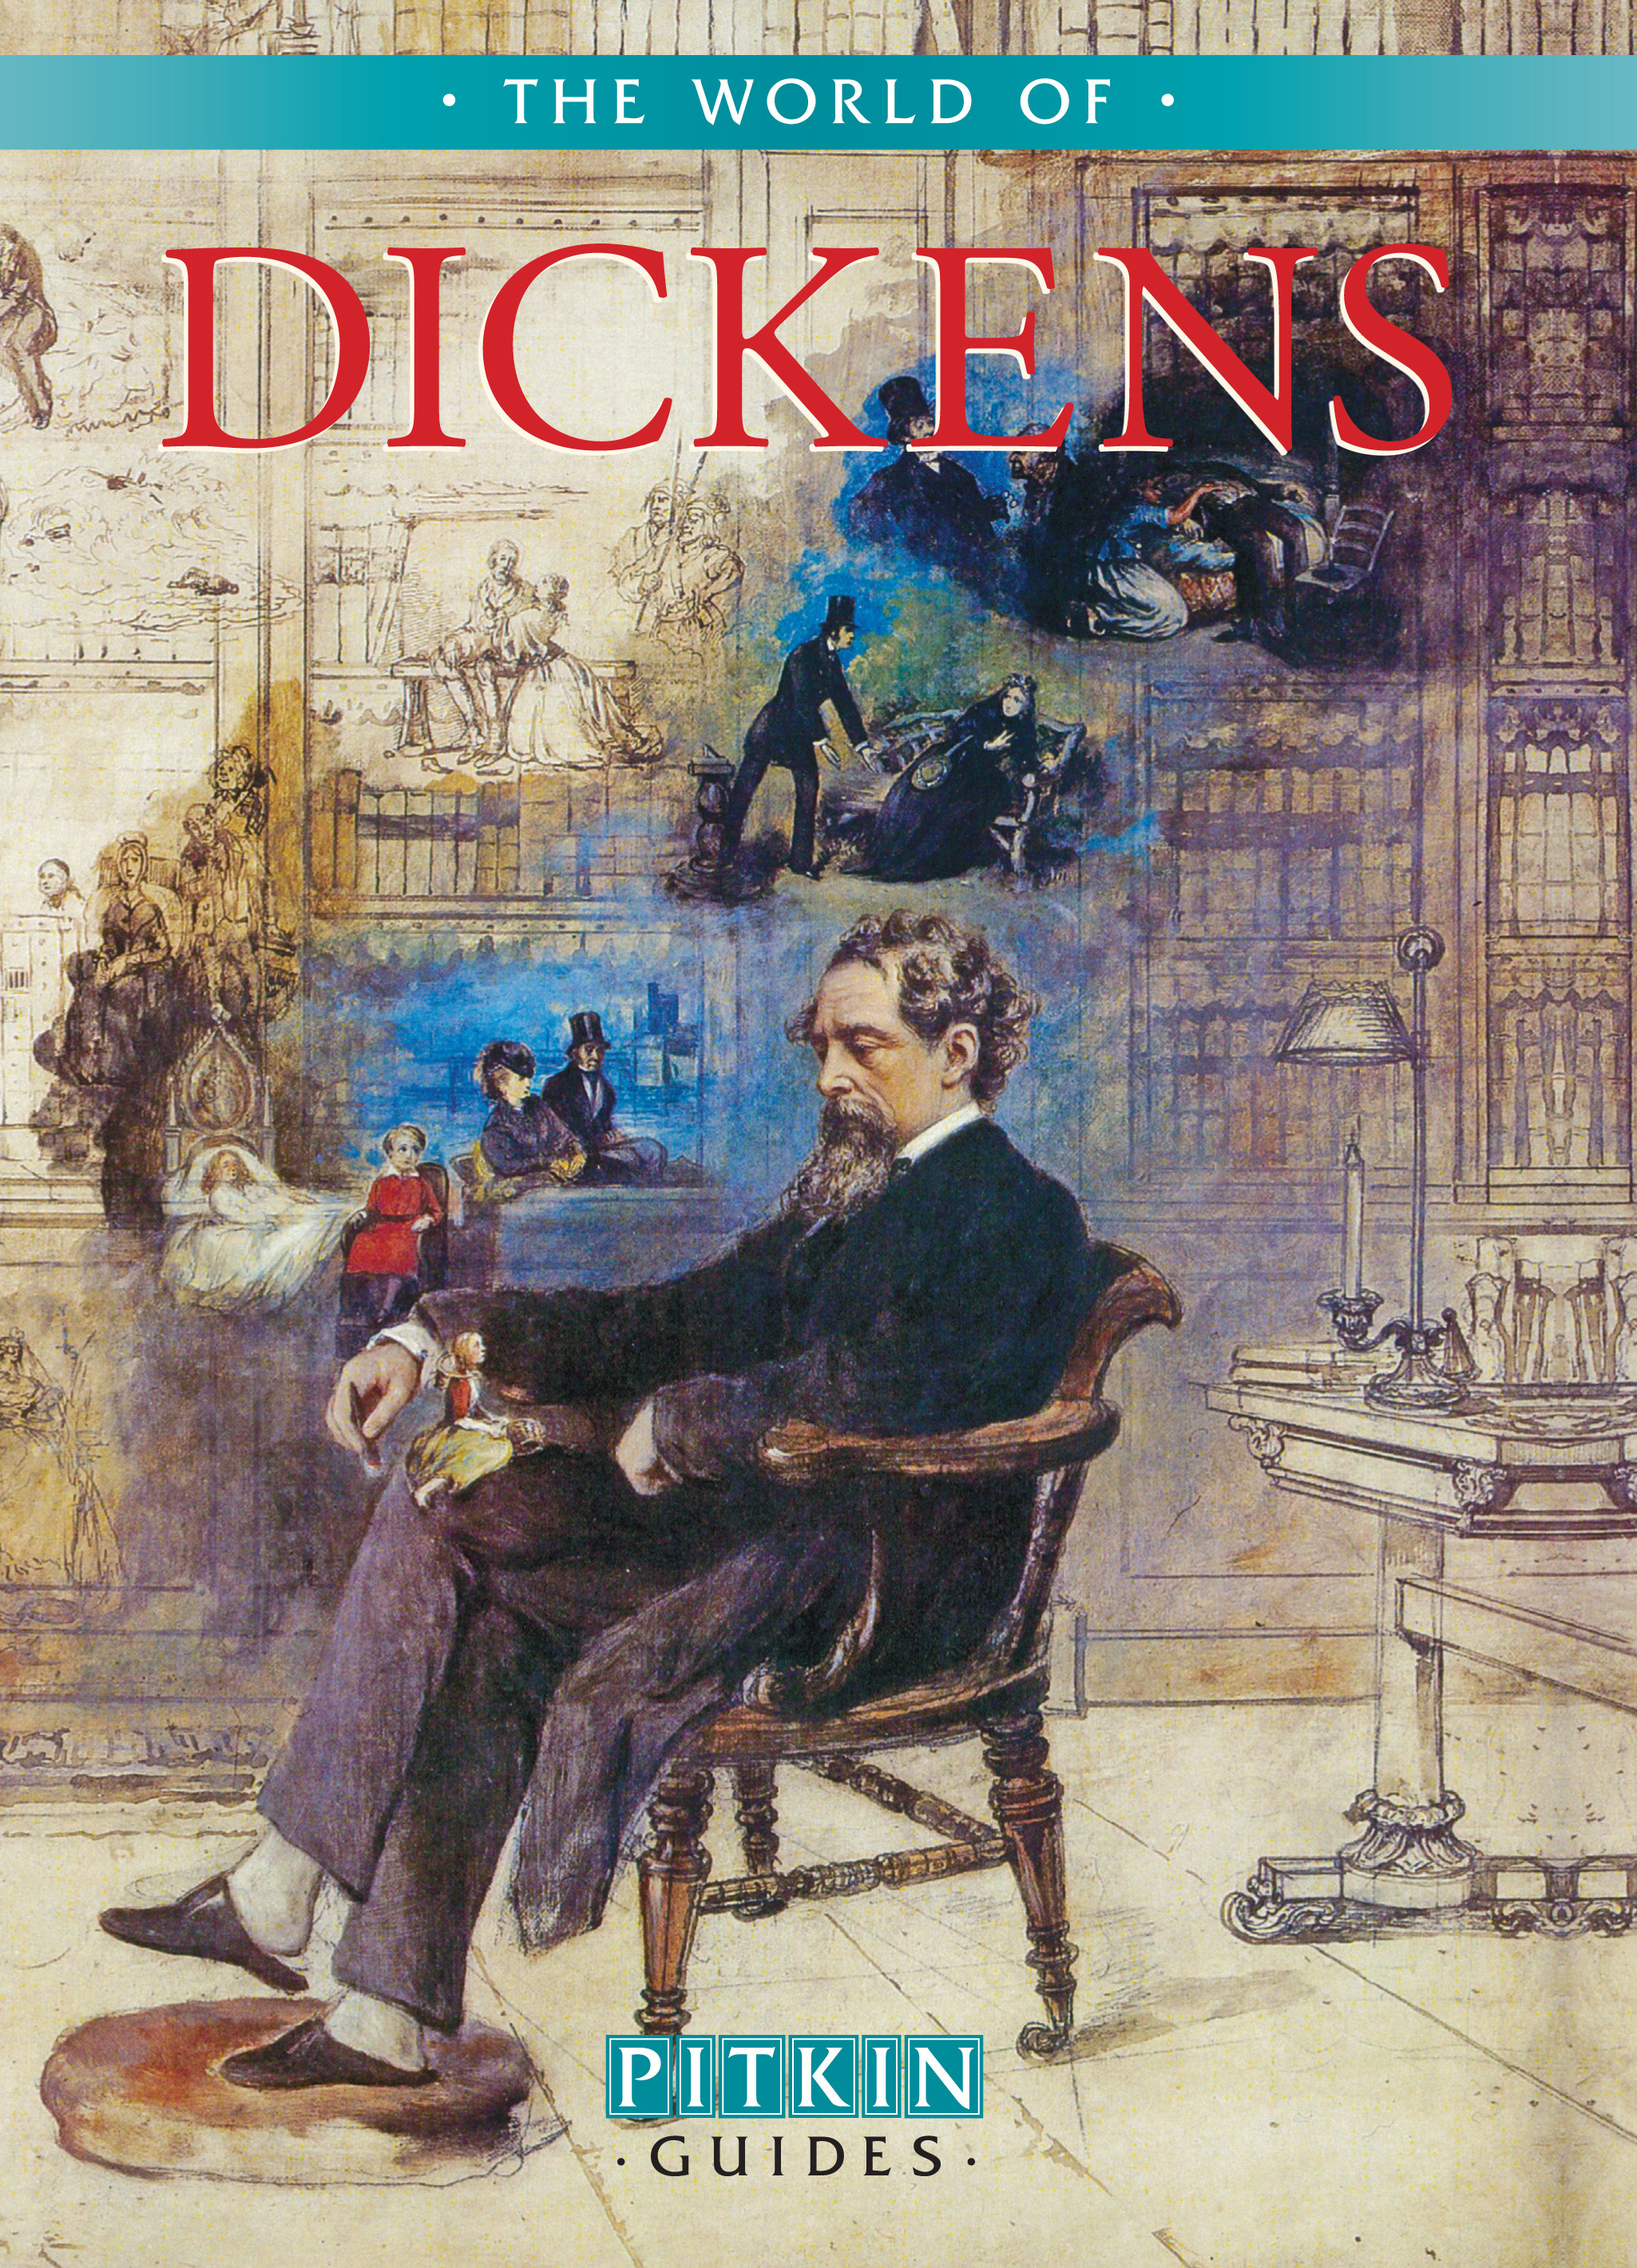 The World of Dickens